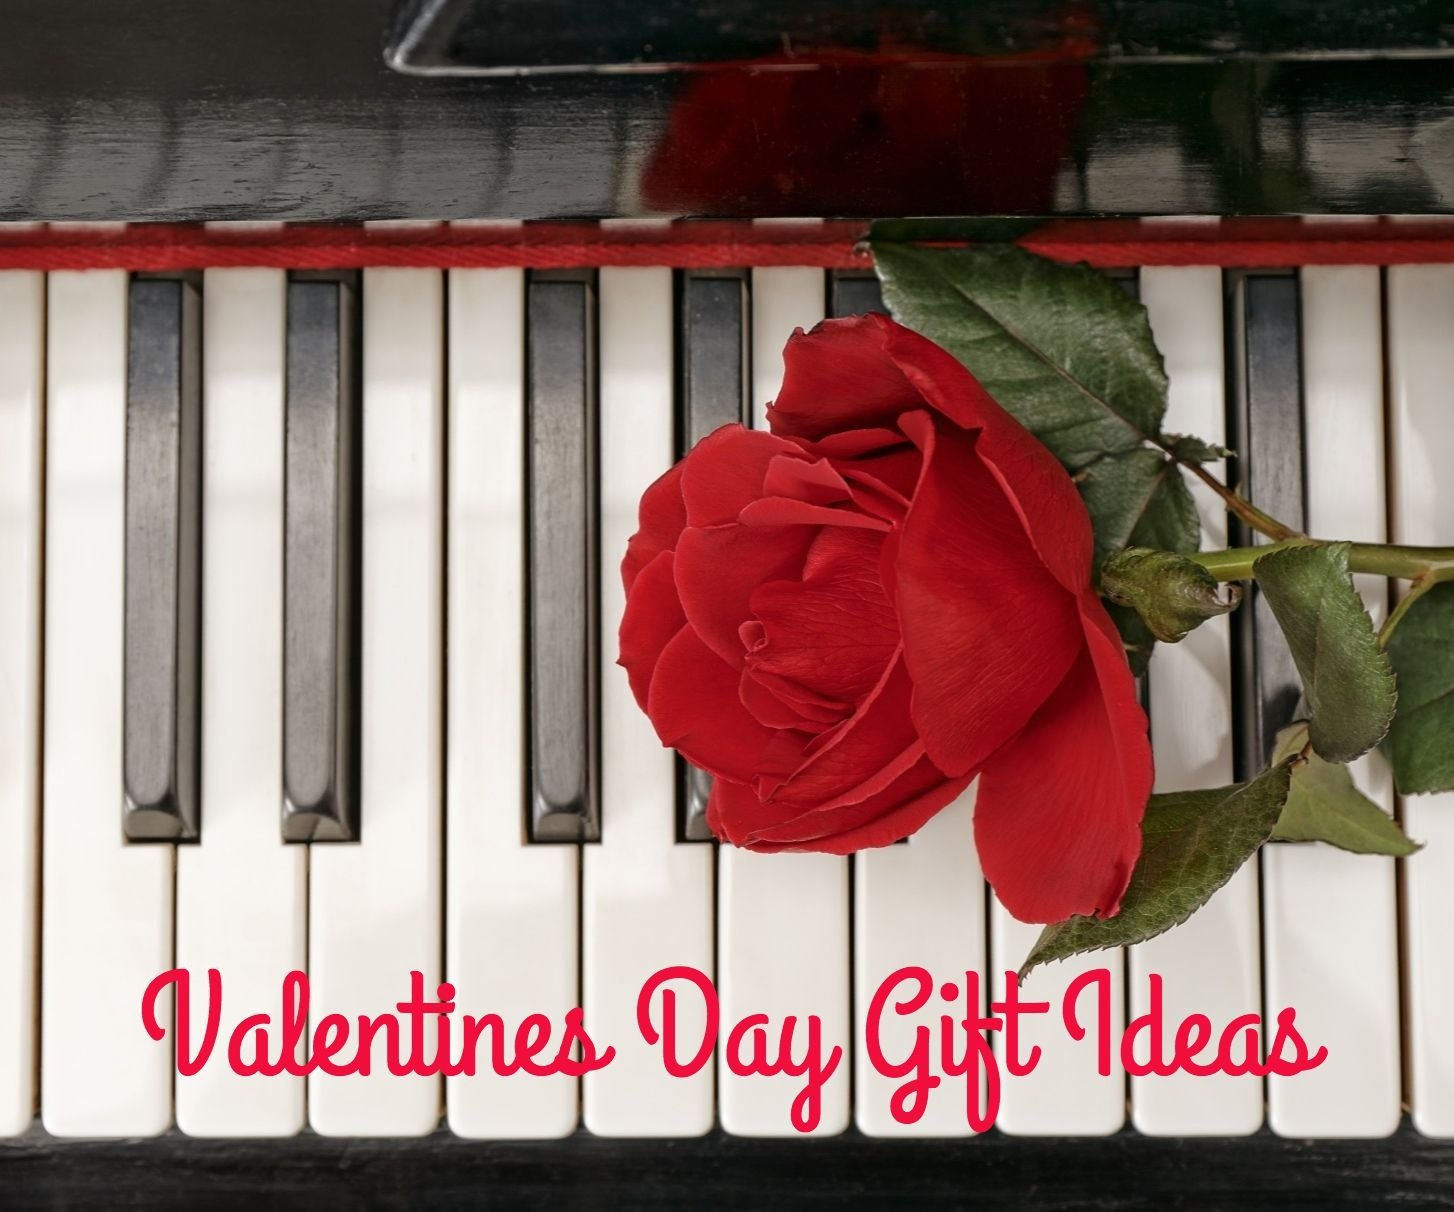 5 Valentines Day Gift Ideas